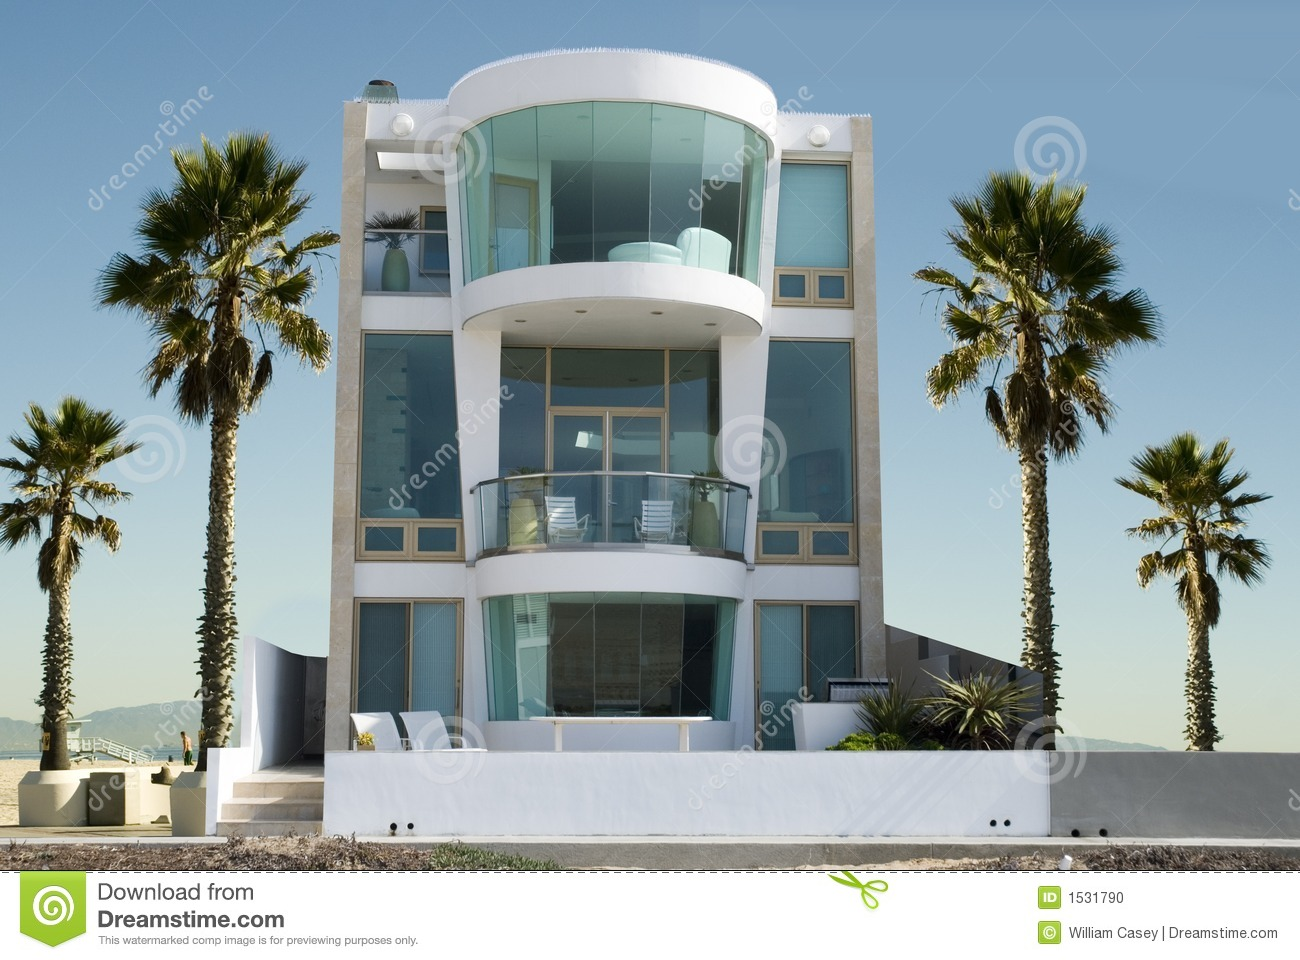 8a6efef564cd09cc Mansions   Luxury Homes Miami Mansion Luxury Home Builder additionally nickresortpuntacana together with Stock Photo Miami Style Image1531790 additionally H Ton Beach House Design besides 2 Story Tiny House On Wheels Designs. on florida luxury house plan